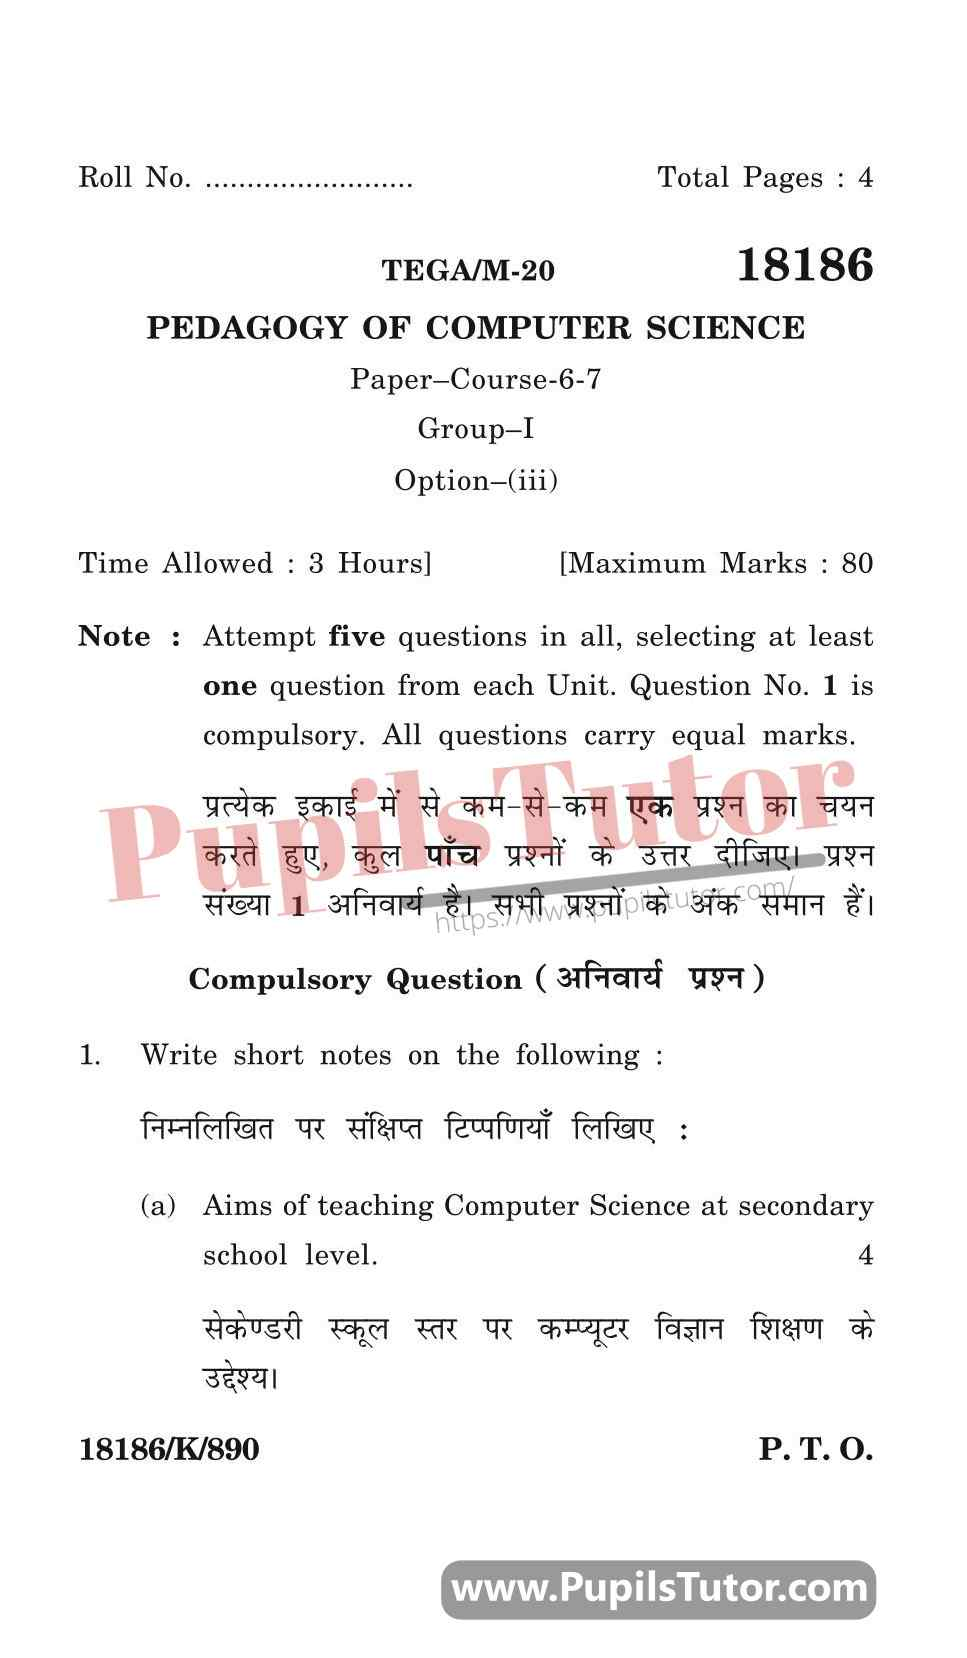 KUK (Kurukshetra University, Haryana) Pedagogy Of Computer Science Question Paper 2020 For B.Ed 1st And 2nd Year And All The 4 Semesters In English And Hindi Medium Free Download PDF - Page 1 - Pupils Tutor